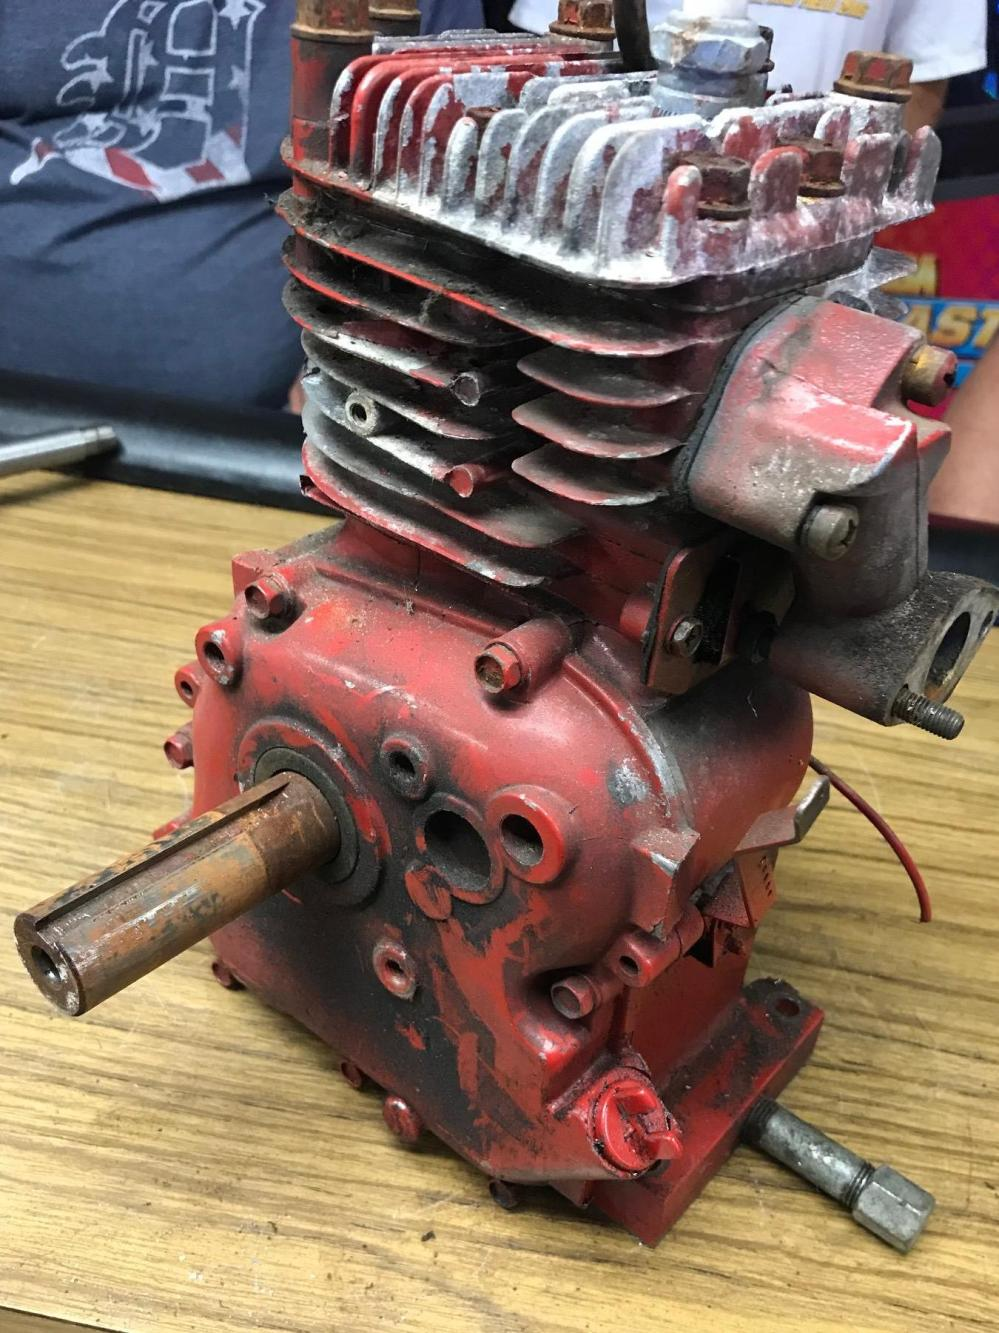 medium resolution of parts are removed from the motor making it a long block ready for some serious work